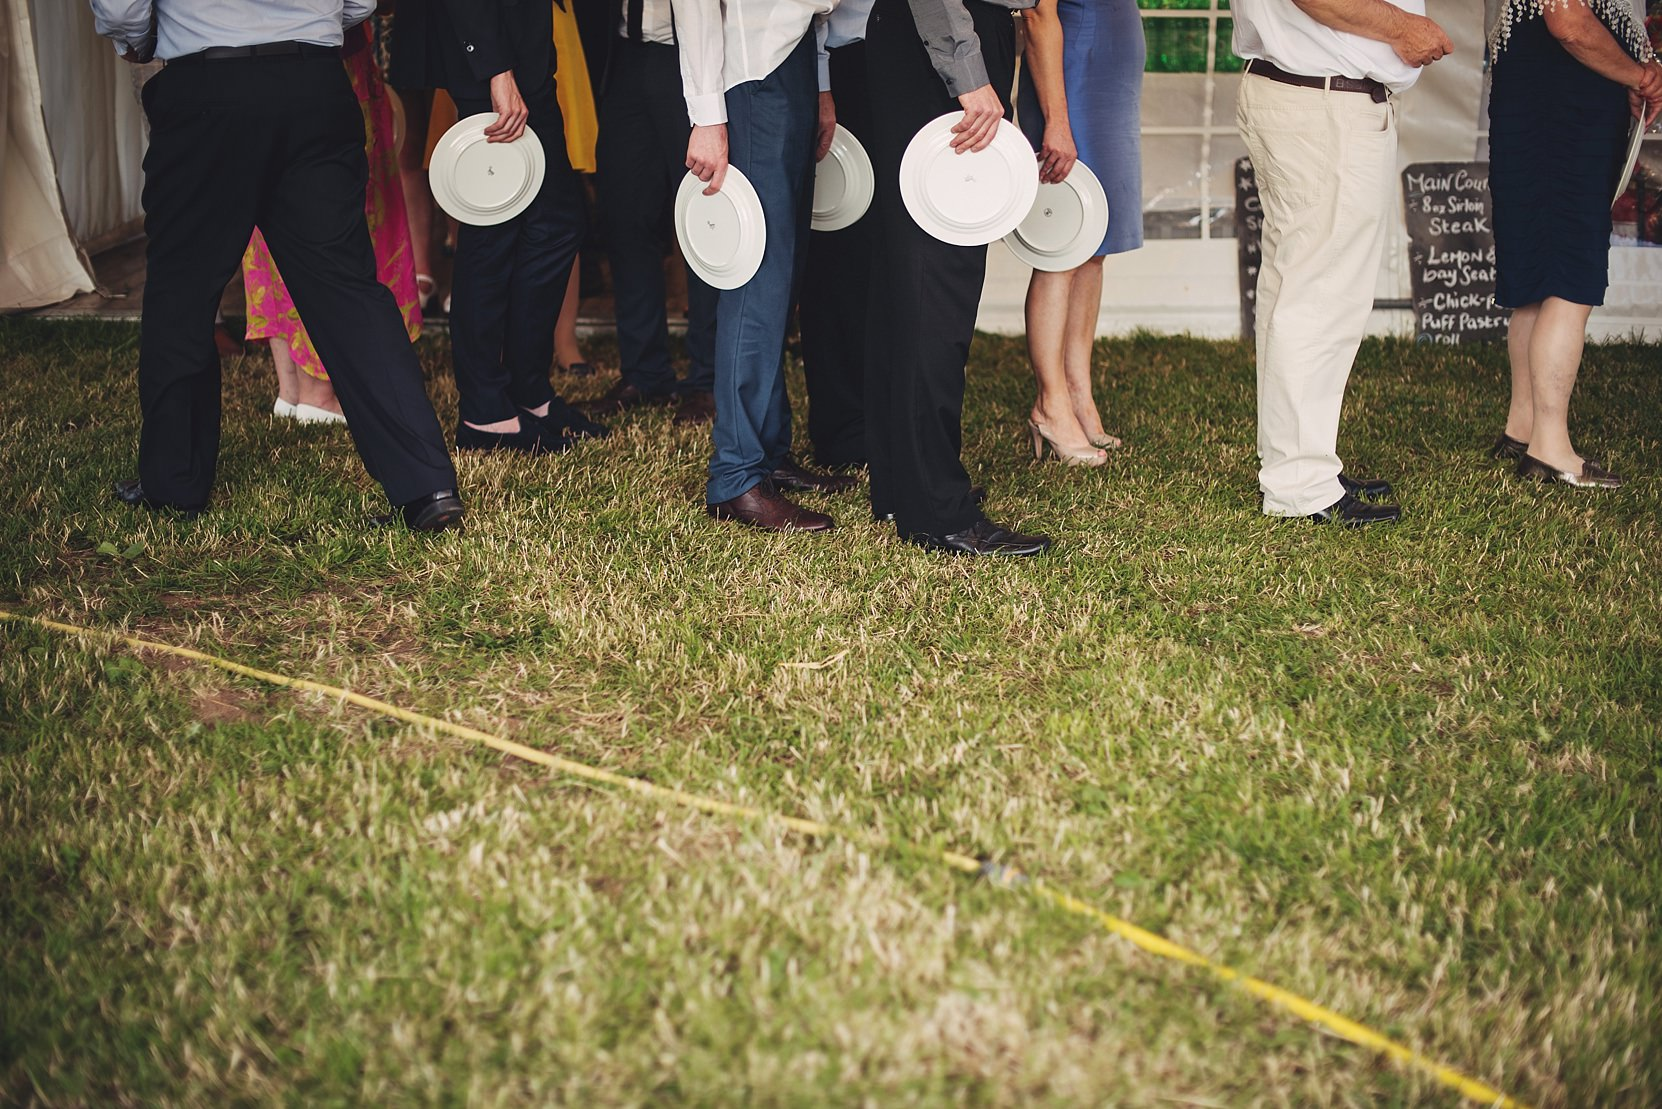 Guests queuing up for food at a wedding holding plates